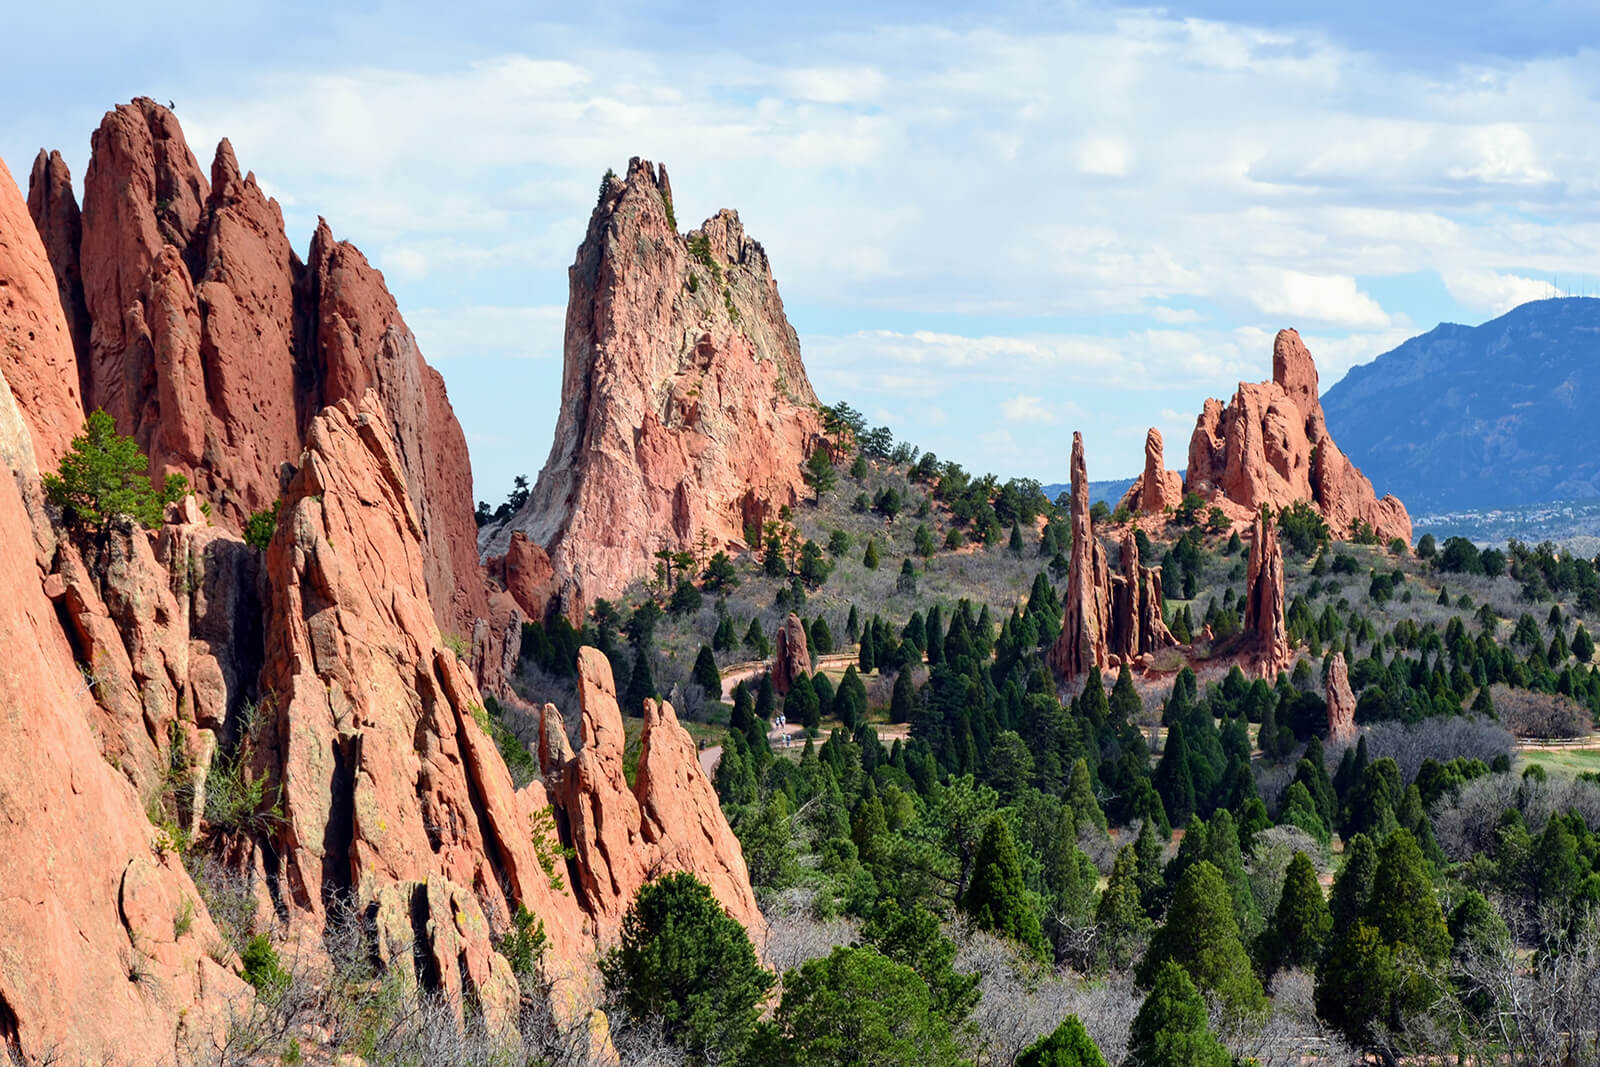 Garden Of The Gods in Colorado Springs, Colorado, USA